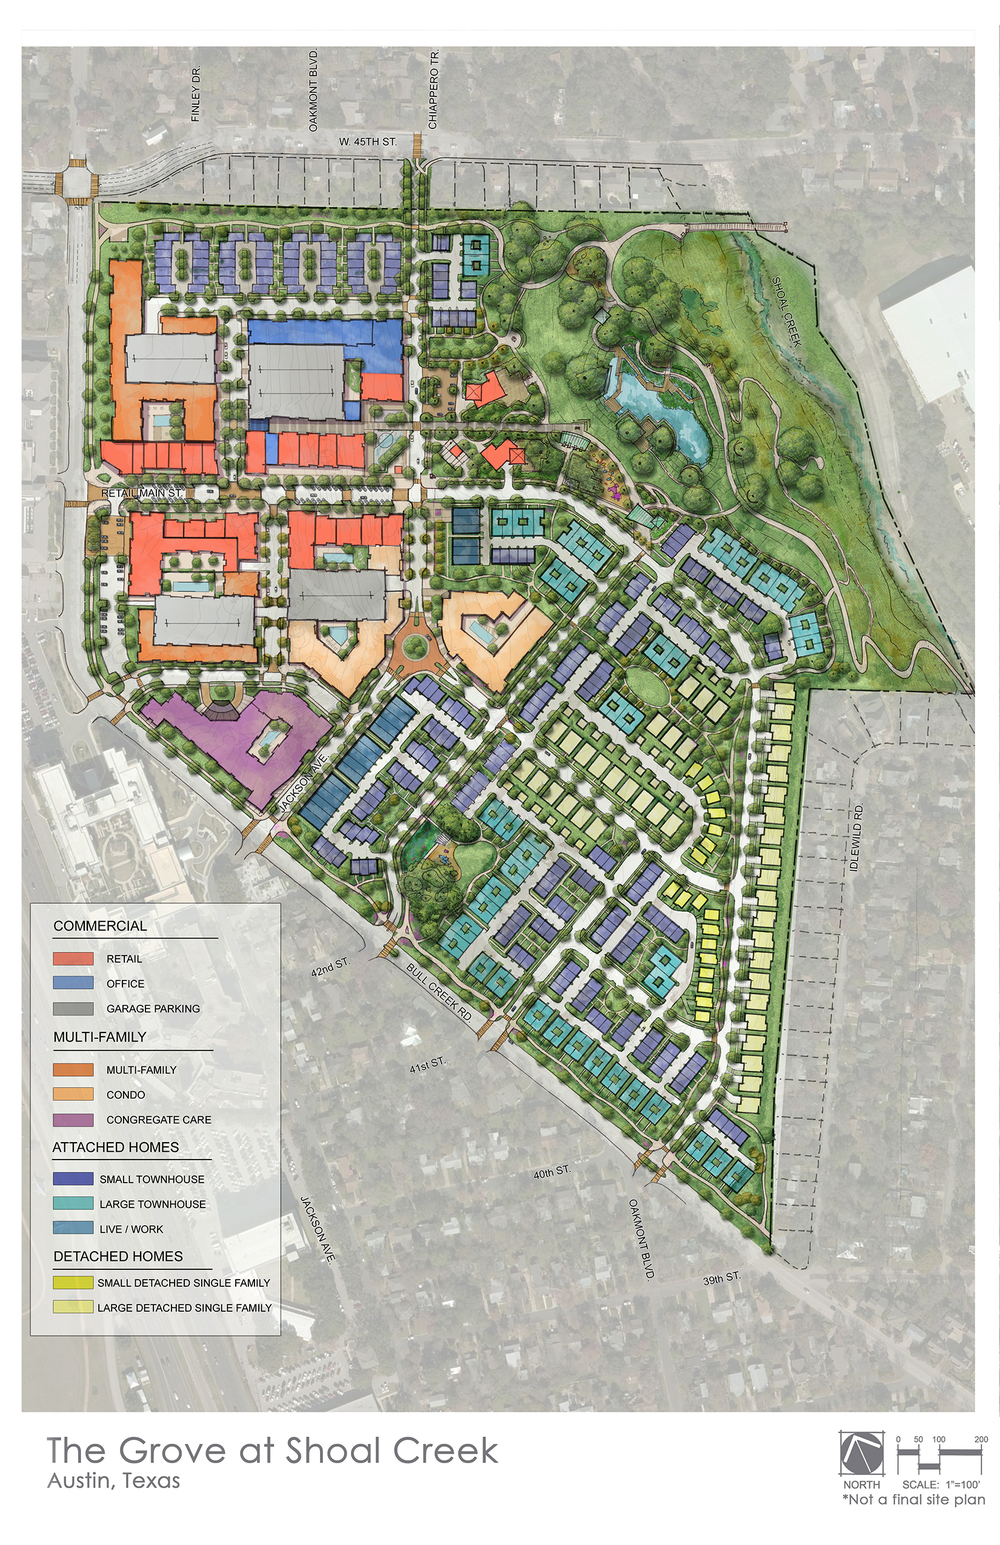 Click the image to download a high resolution photo of the Master Plan.